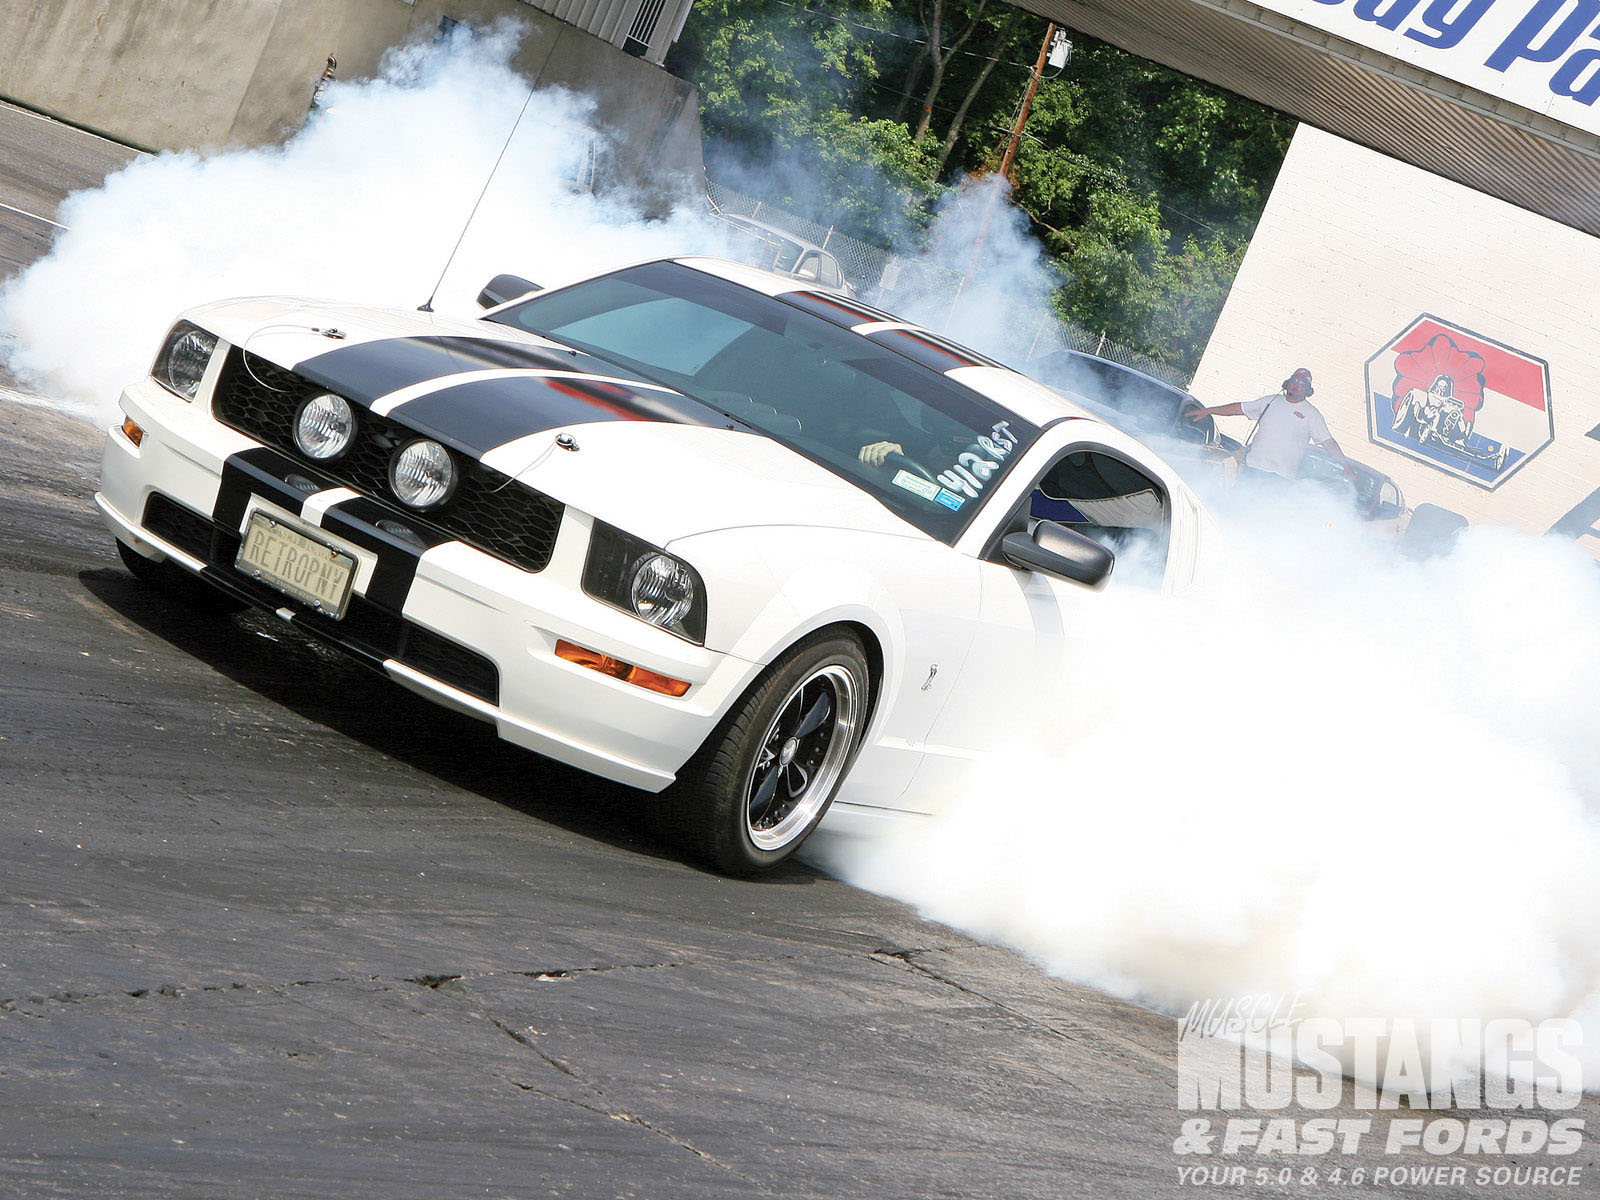 Mmfp 1002 07 2009 Fords E Town Mustang Burnout